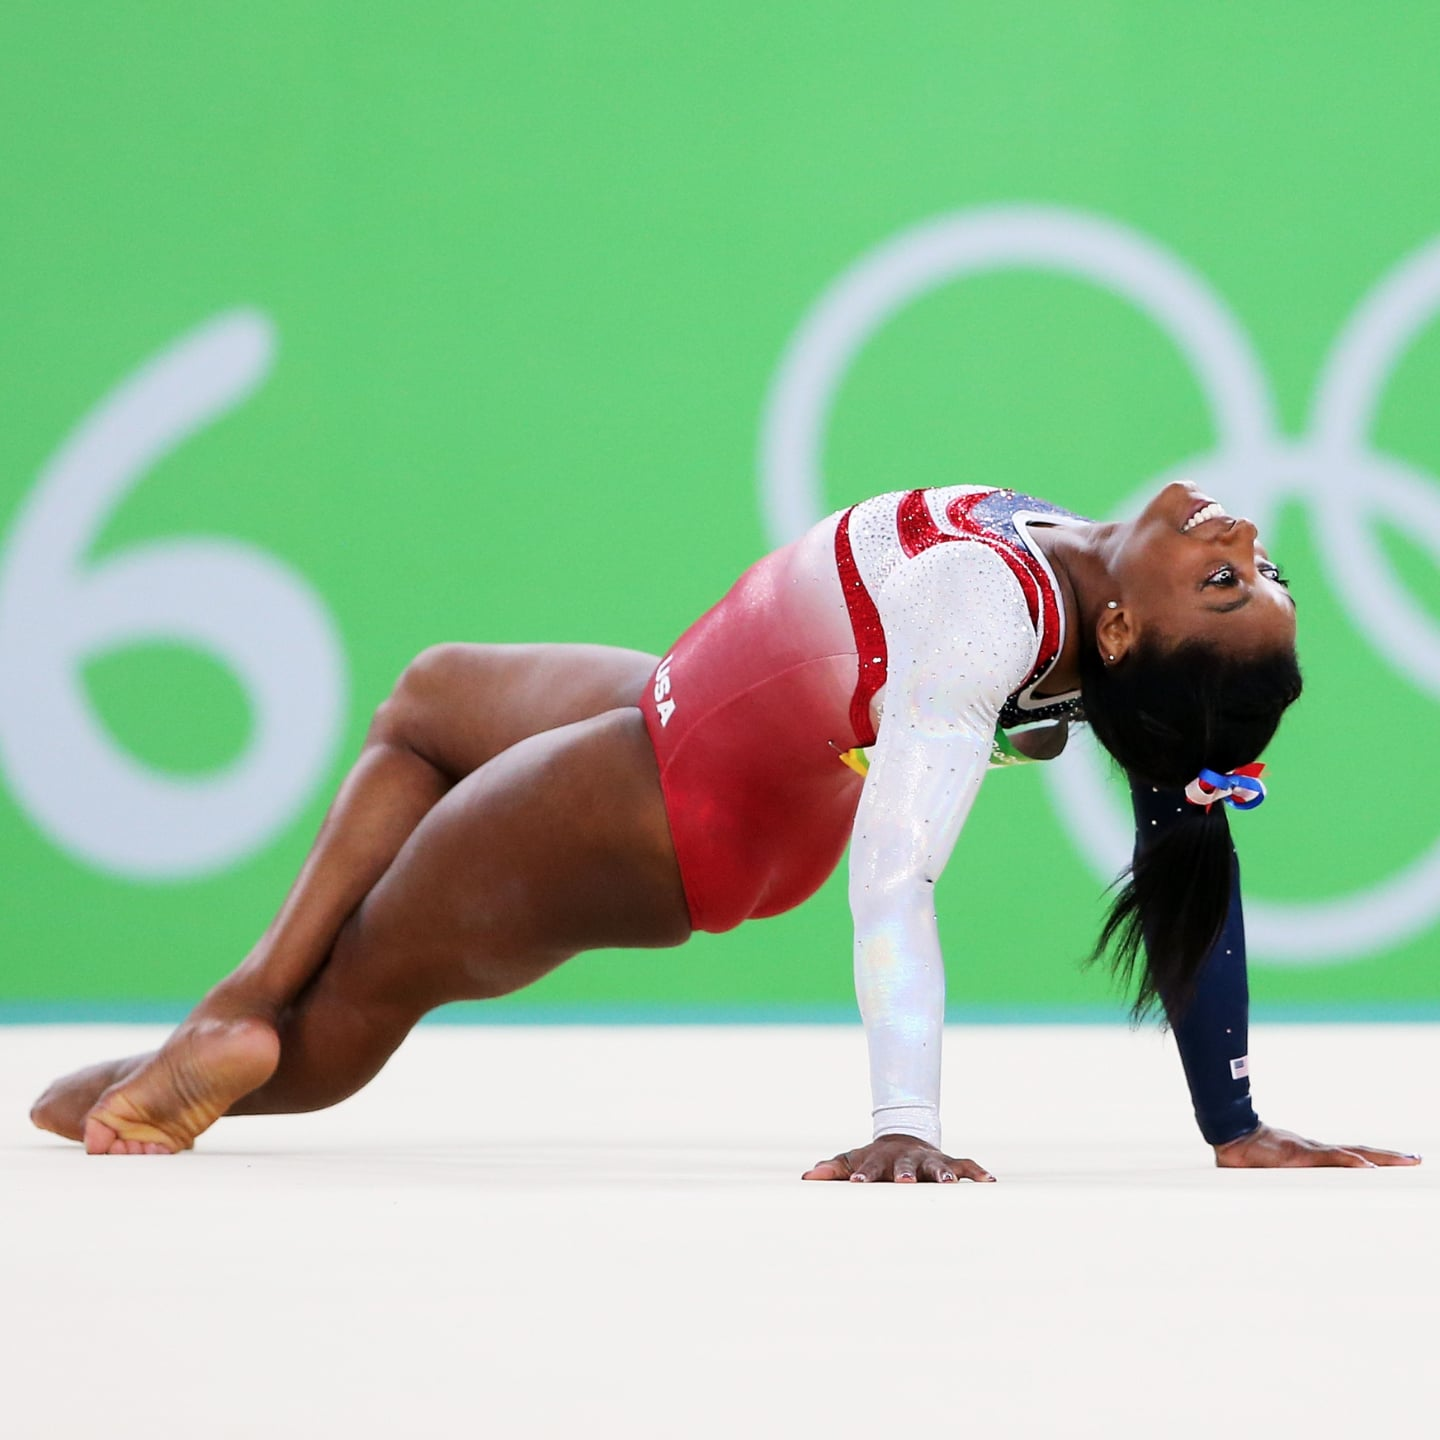 Joint gymnastics for health promotion